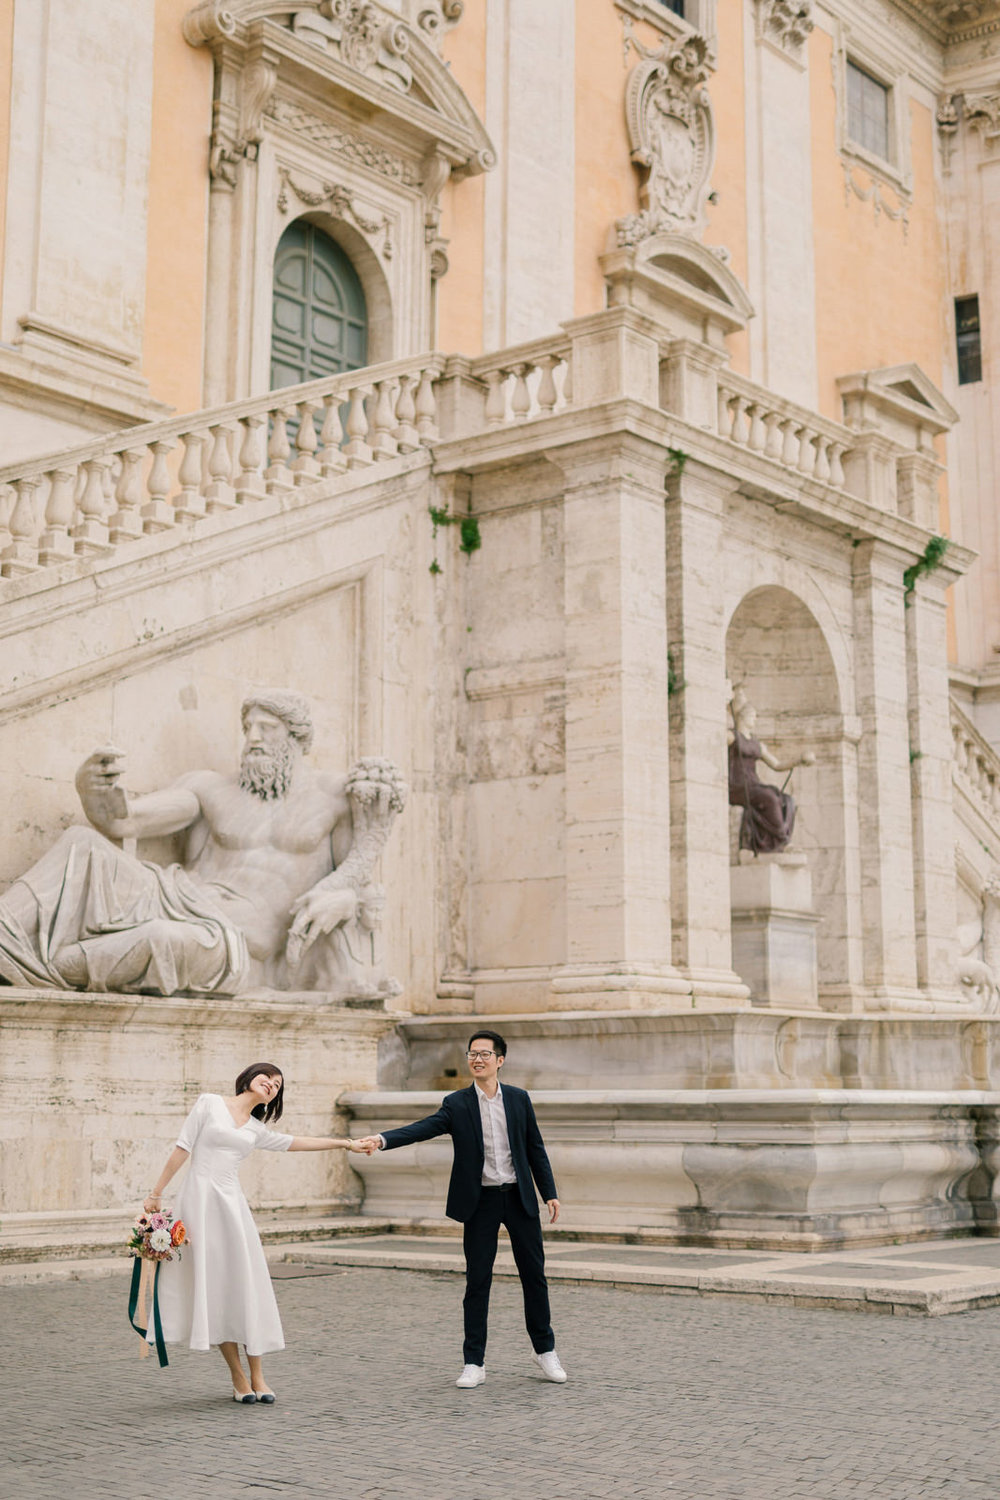 Engagement Session at Spanish Stair Rome. Photo by CHYMO & MORE